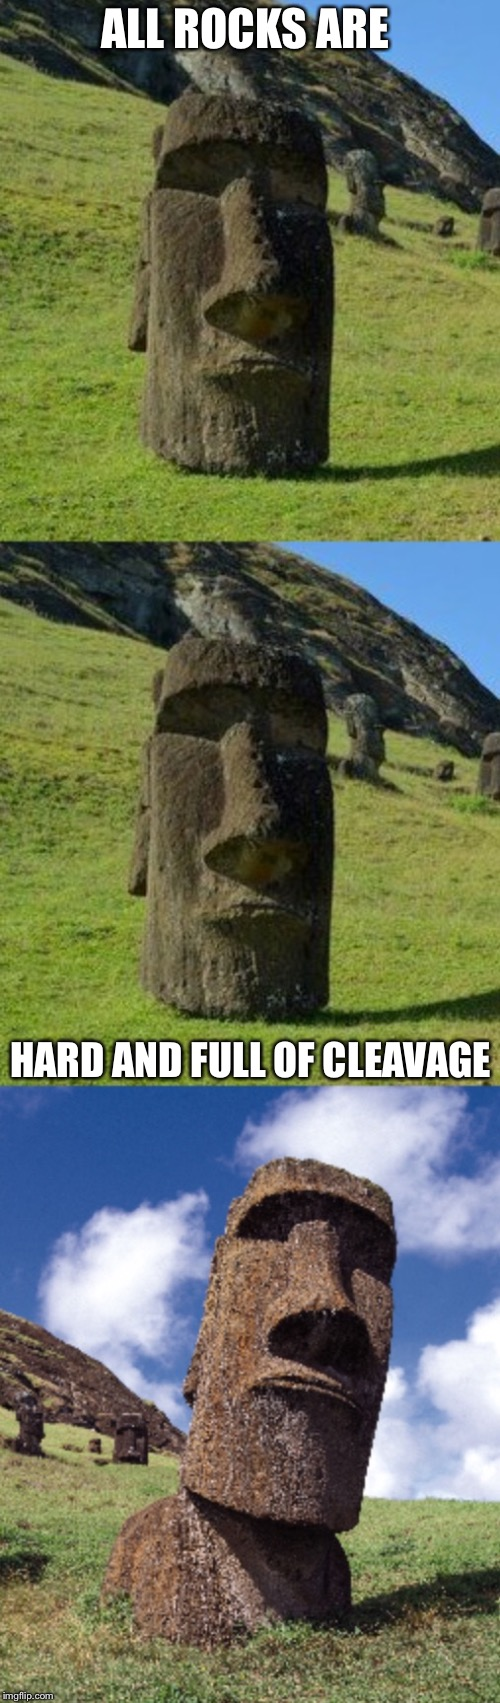 Bad Pun Moai | ALL ROCKS ARE HARD AND FULL OF CLEAVAGE | image tagged in bad pun moai,funny,memes | made w/ Imgflip meme maker